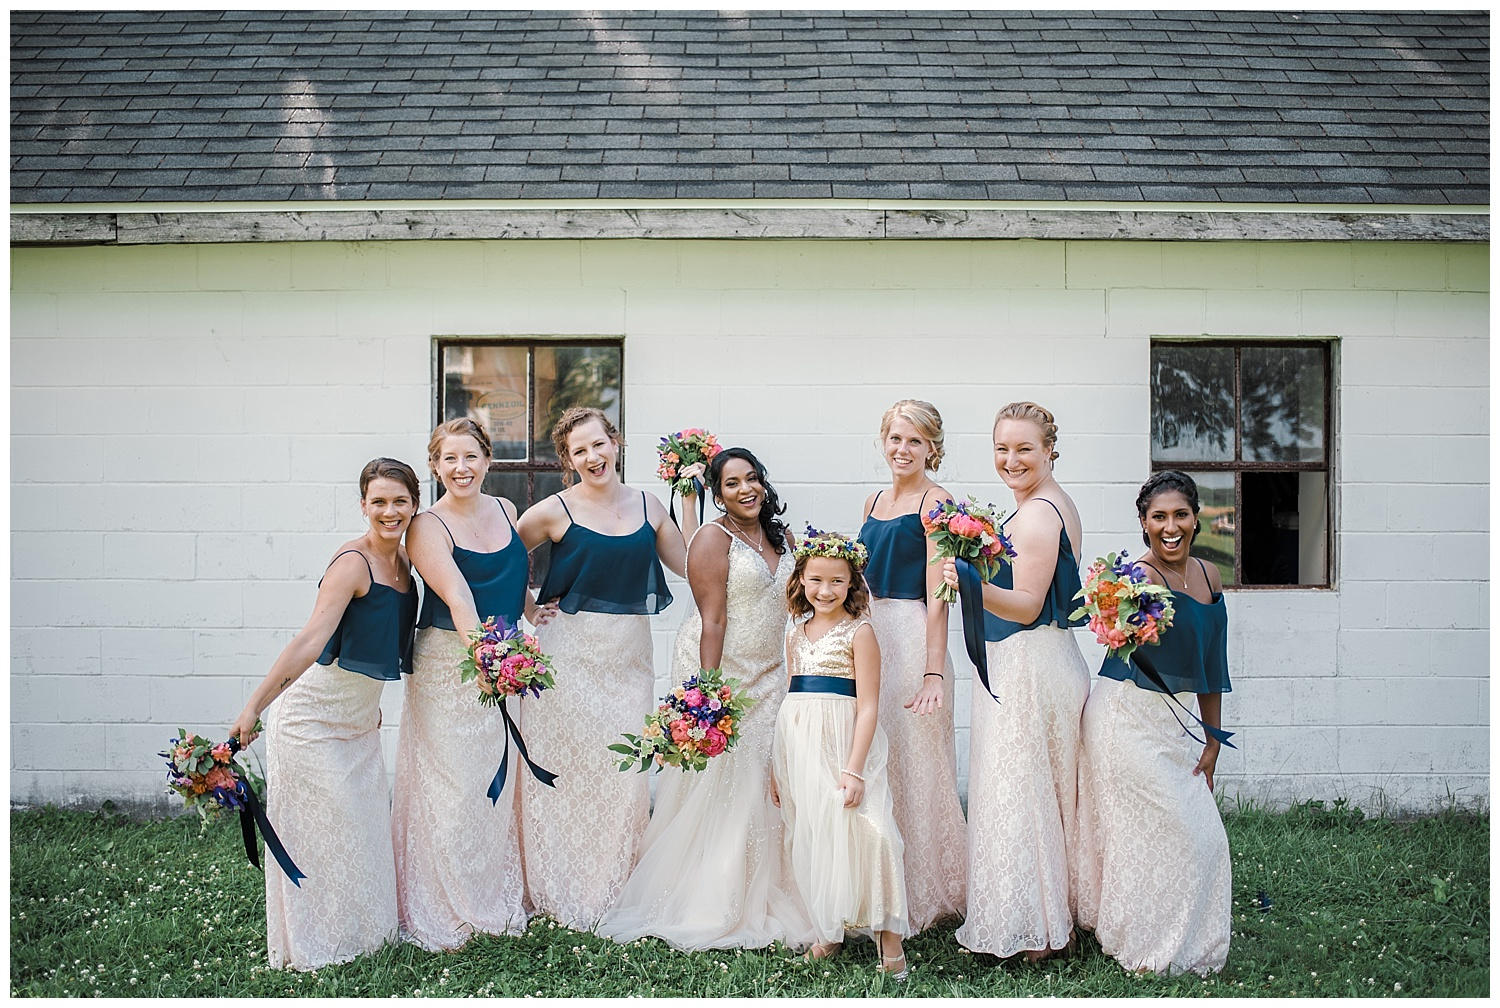 badger farms wisconsin wedding, wisconsin wedding, summer wedding, madison wedding, madison summer wedding, traveling photographer, badger farms, wedding party, bridal party, navy blue bridesmaids dresses, white lace wedding dress, diamond necklace, summer flower bouquet, outdoor wedding